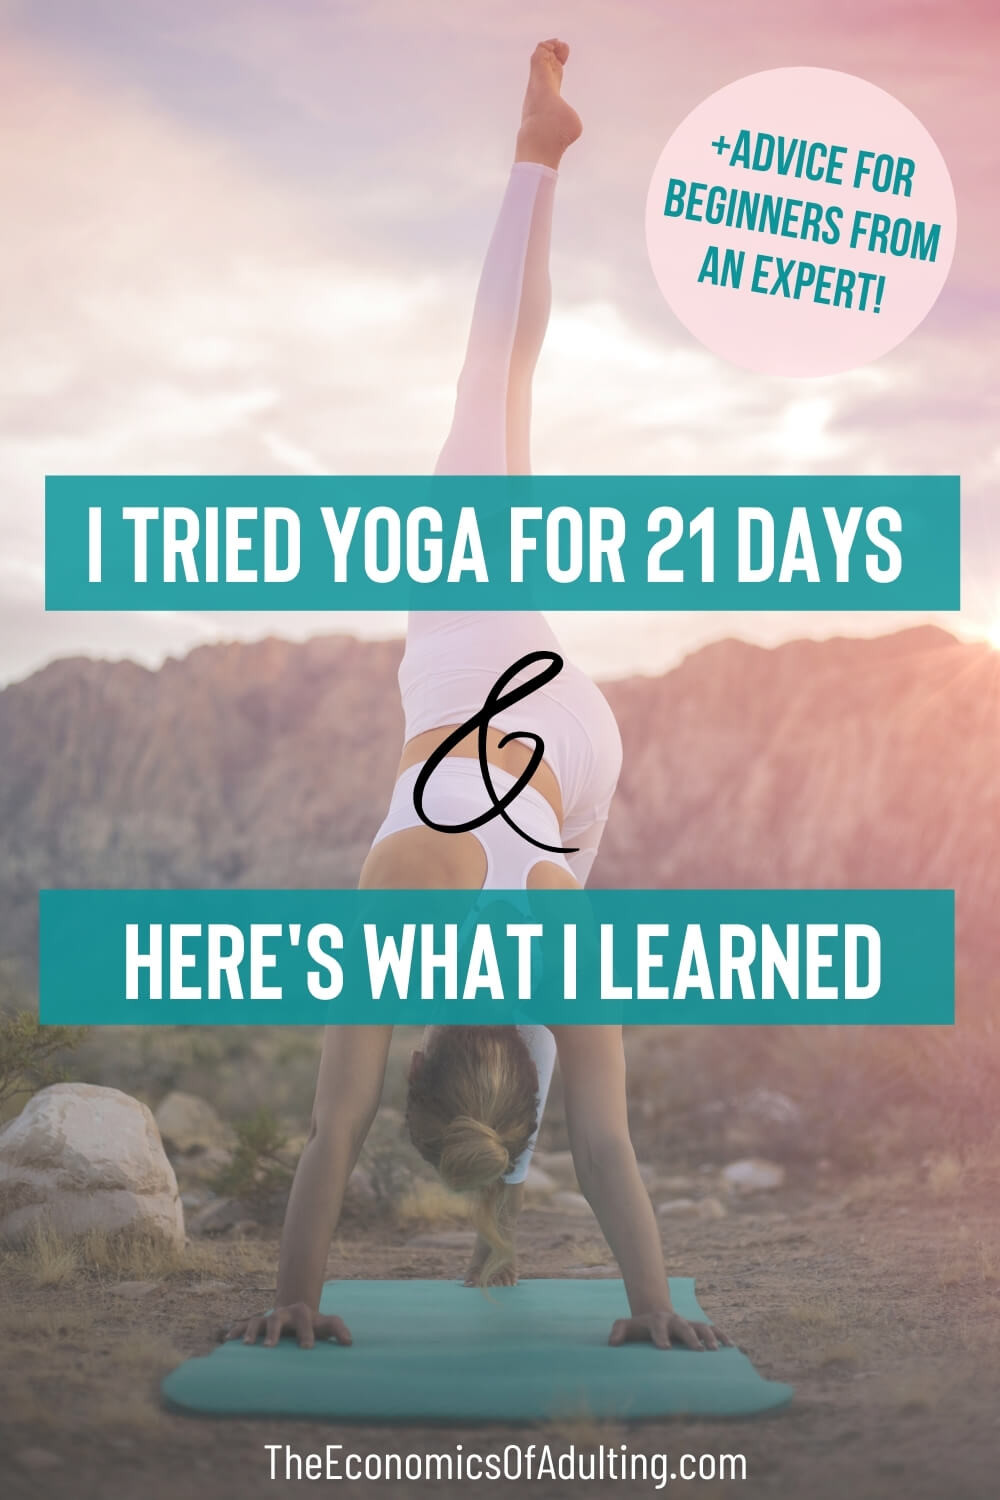 A woman doing yoga with the headline 'I Tried Yoga For 21 Days & Here's What I Learned'